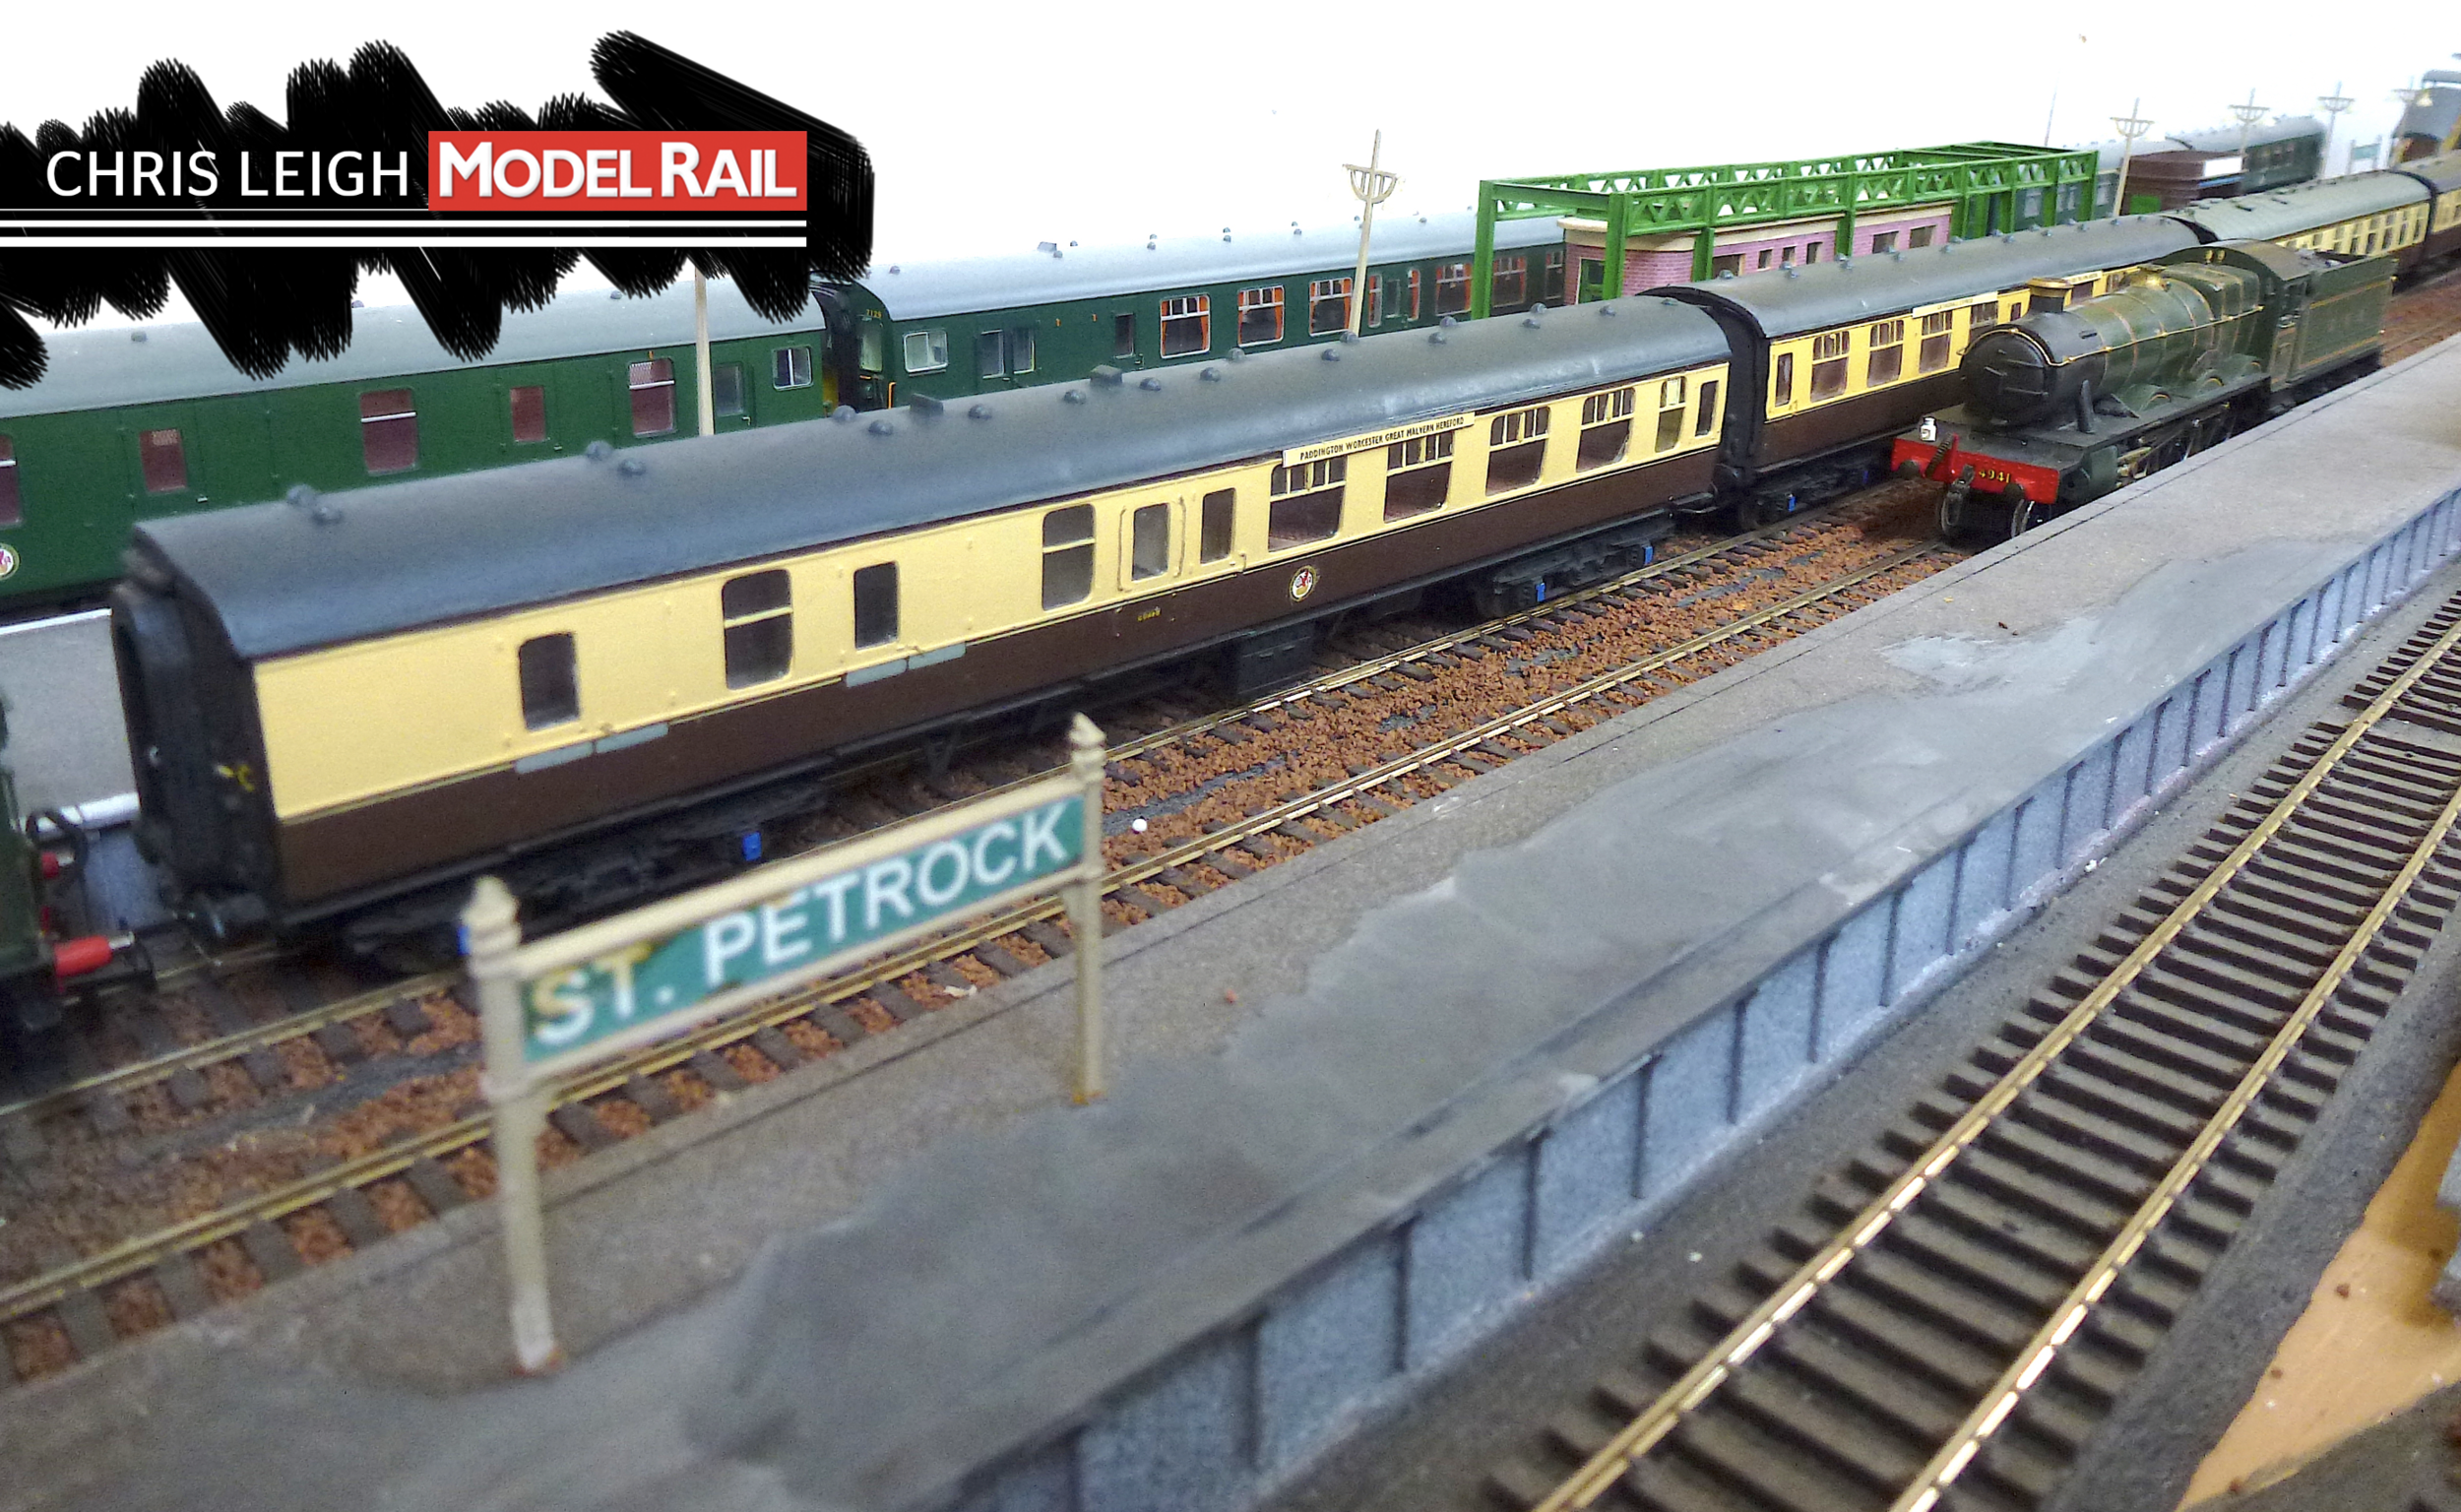 The Kitmaster chocolate and cream set, with a Bachmann restaurant car added. The 'Hall' creeping past, light engine, is also one of Keith's models and will be offered for sale as soon as I can identify its origin. CHRIS LEIGH